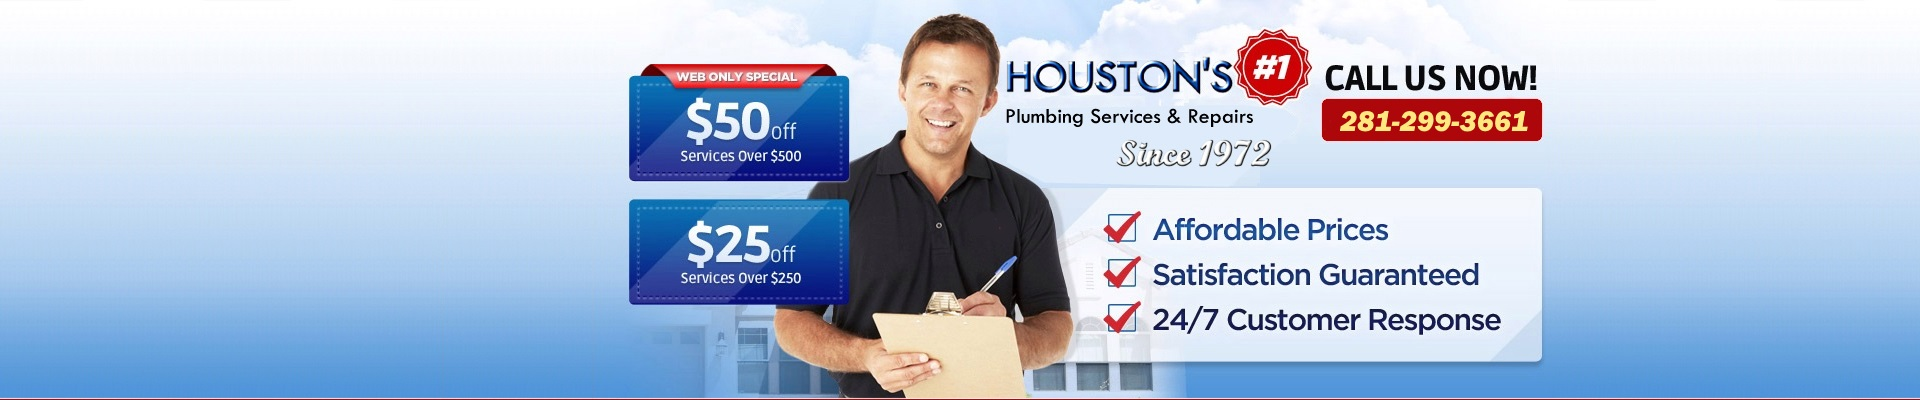 Houston Plumbing Services